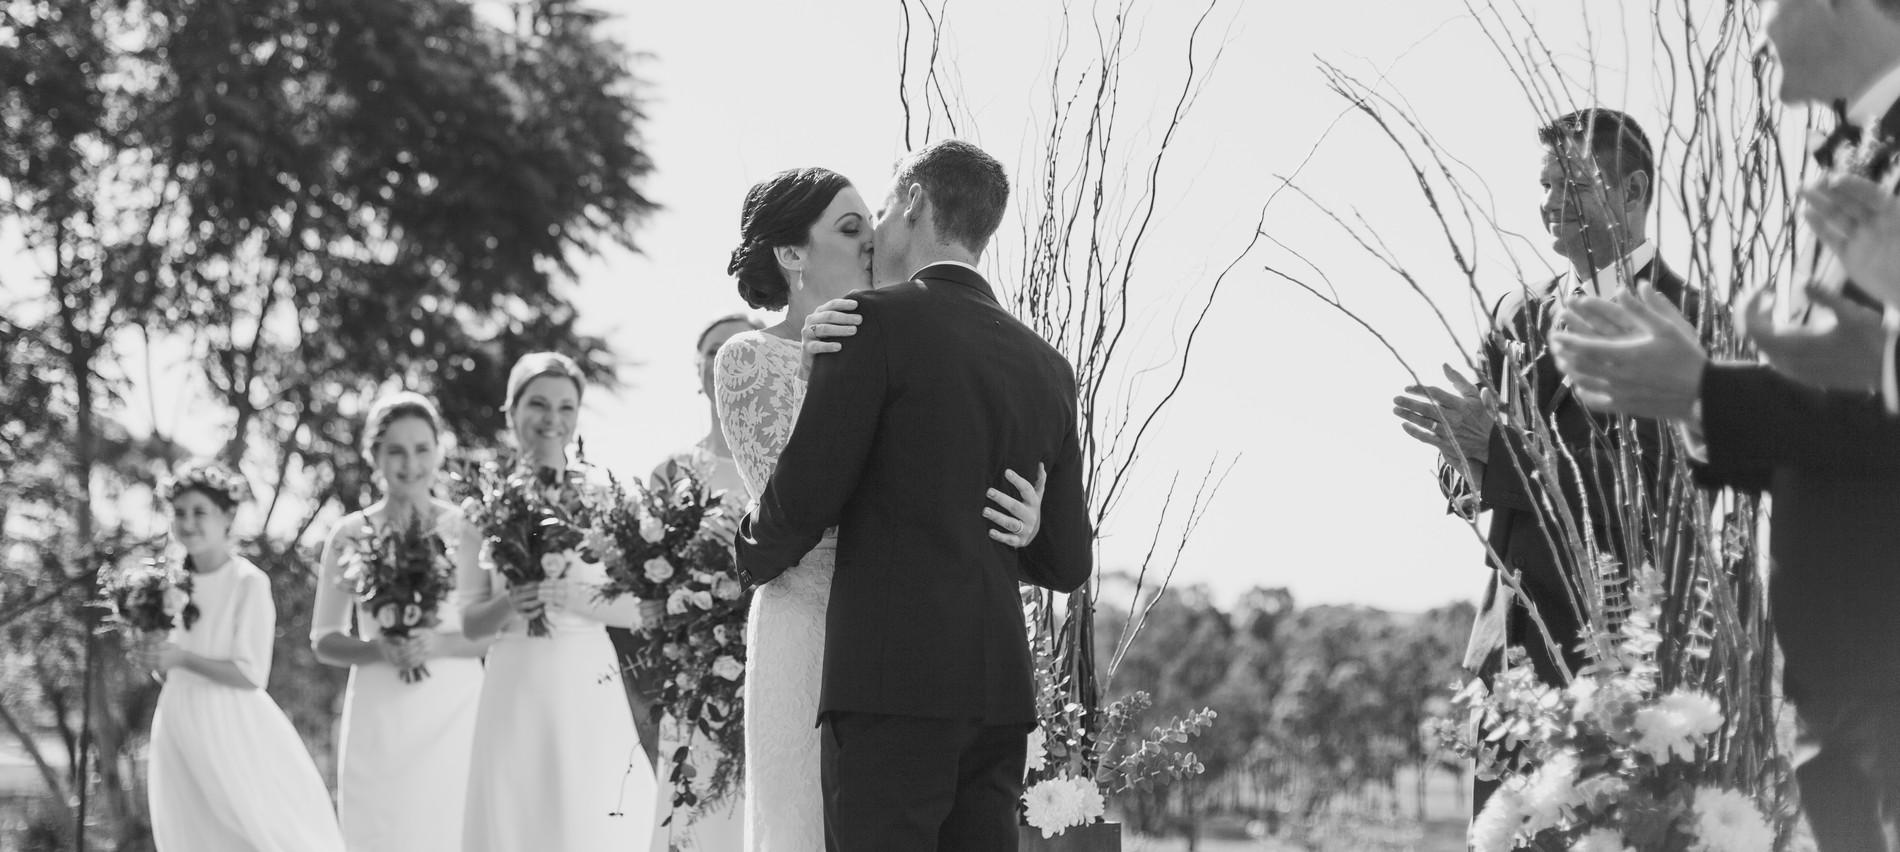 simon-joice-marriage-celebrant-male-my-blog-coffs-harbour-married-by-simon